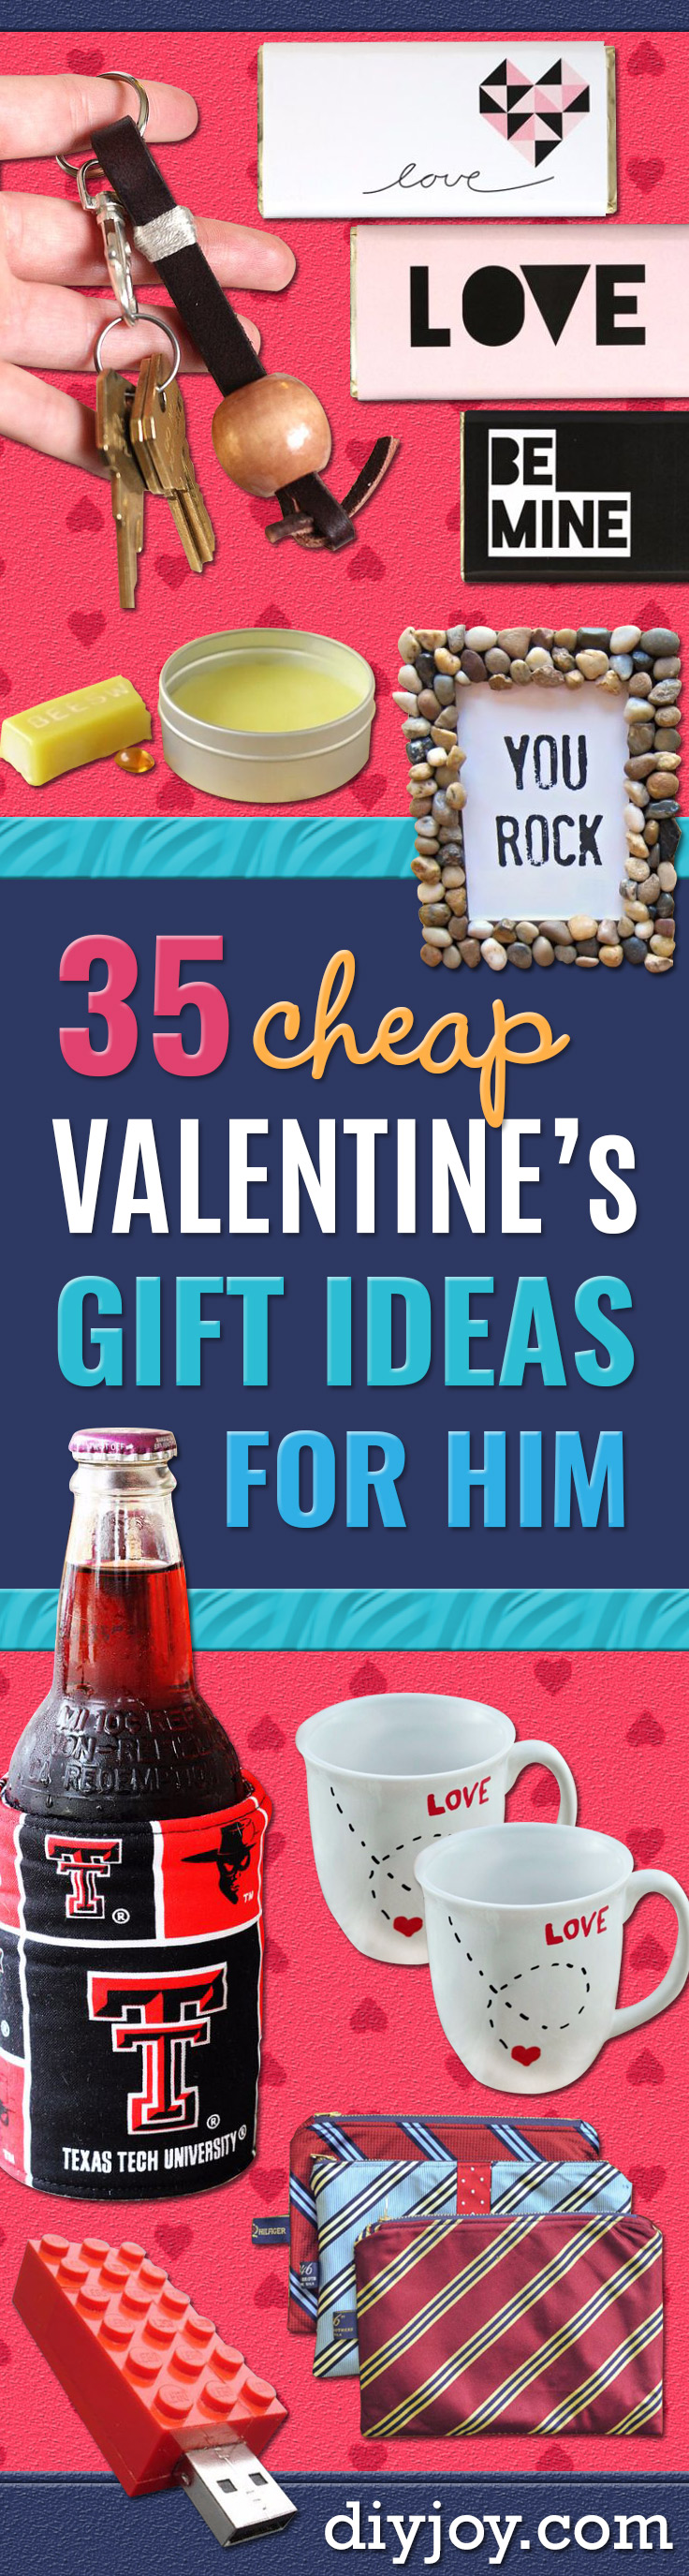 Easy DIY Valentines Day Gifts for Him - Valentine's Day Chocolate Bar Wraps - Cool and Easy Things To Make for Your Husband, Boyfriend, Fiancee - Creative and Cheap Do It Yourself Projects to Give Men, Guys